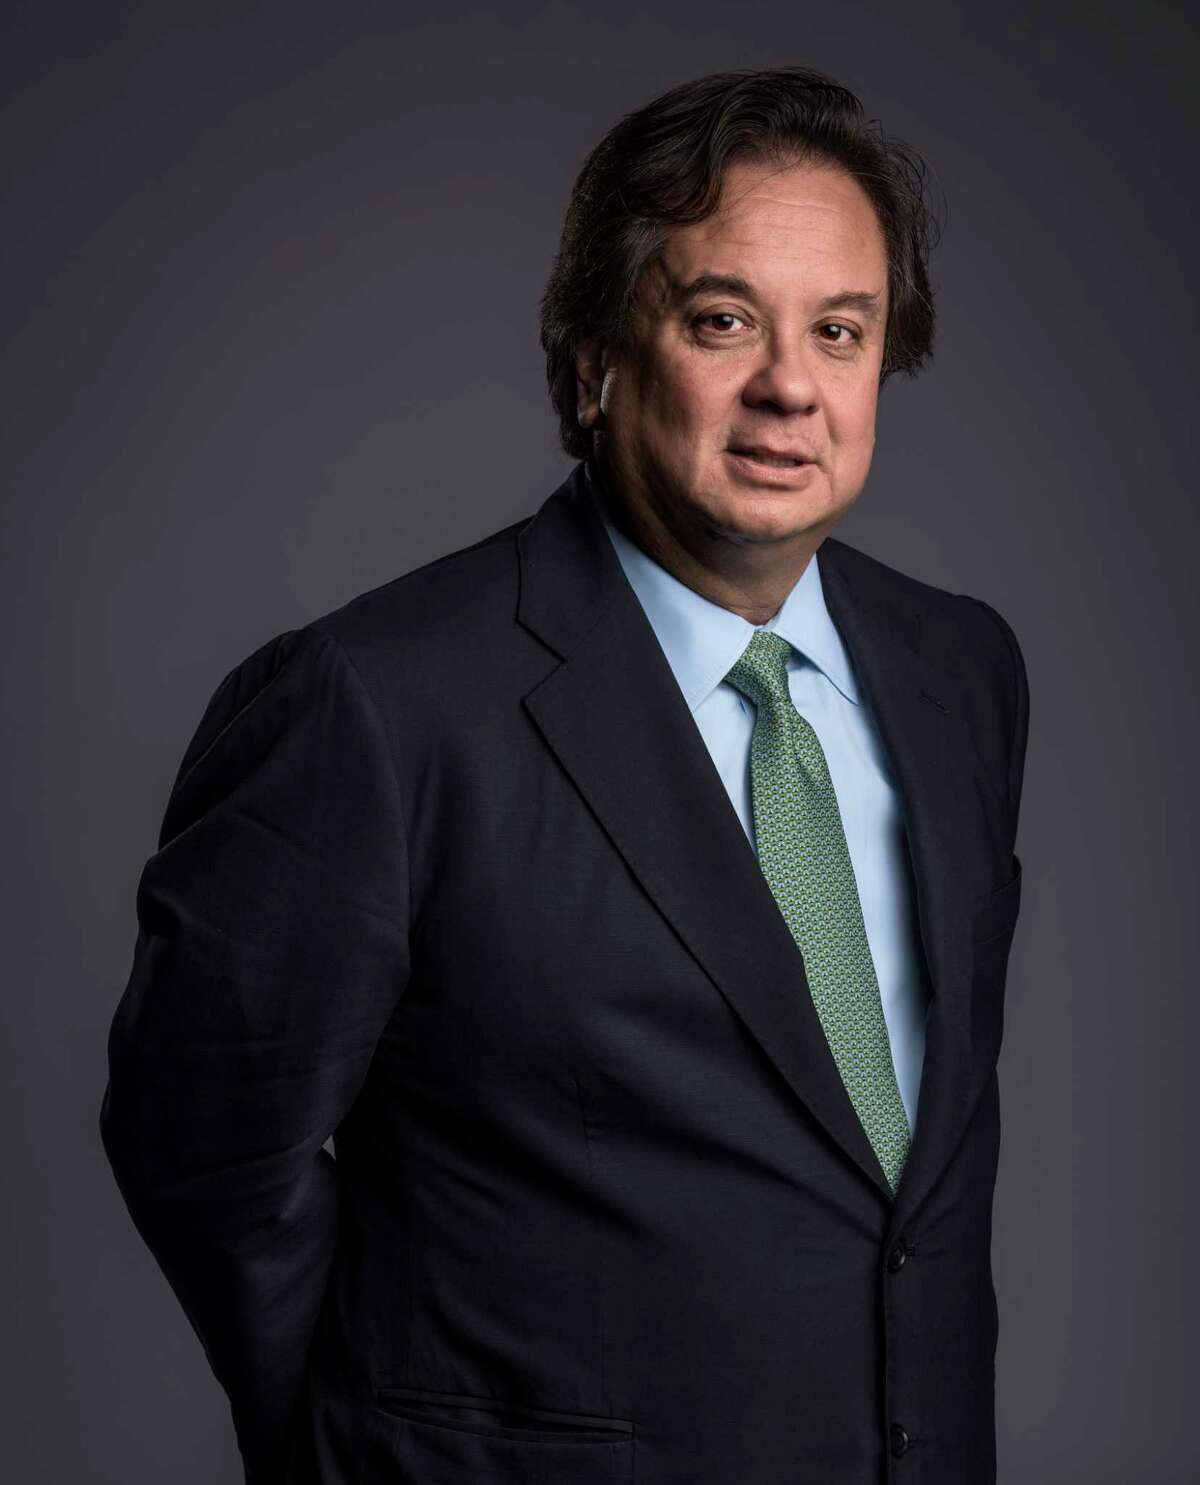 George Conway is known for being a vehement Never Trumper, but what he's really known for is being a vehement Never Trumper while married to a top Trump aide.